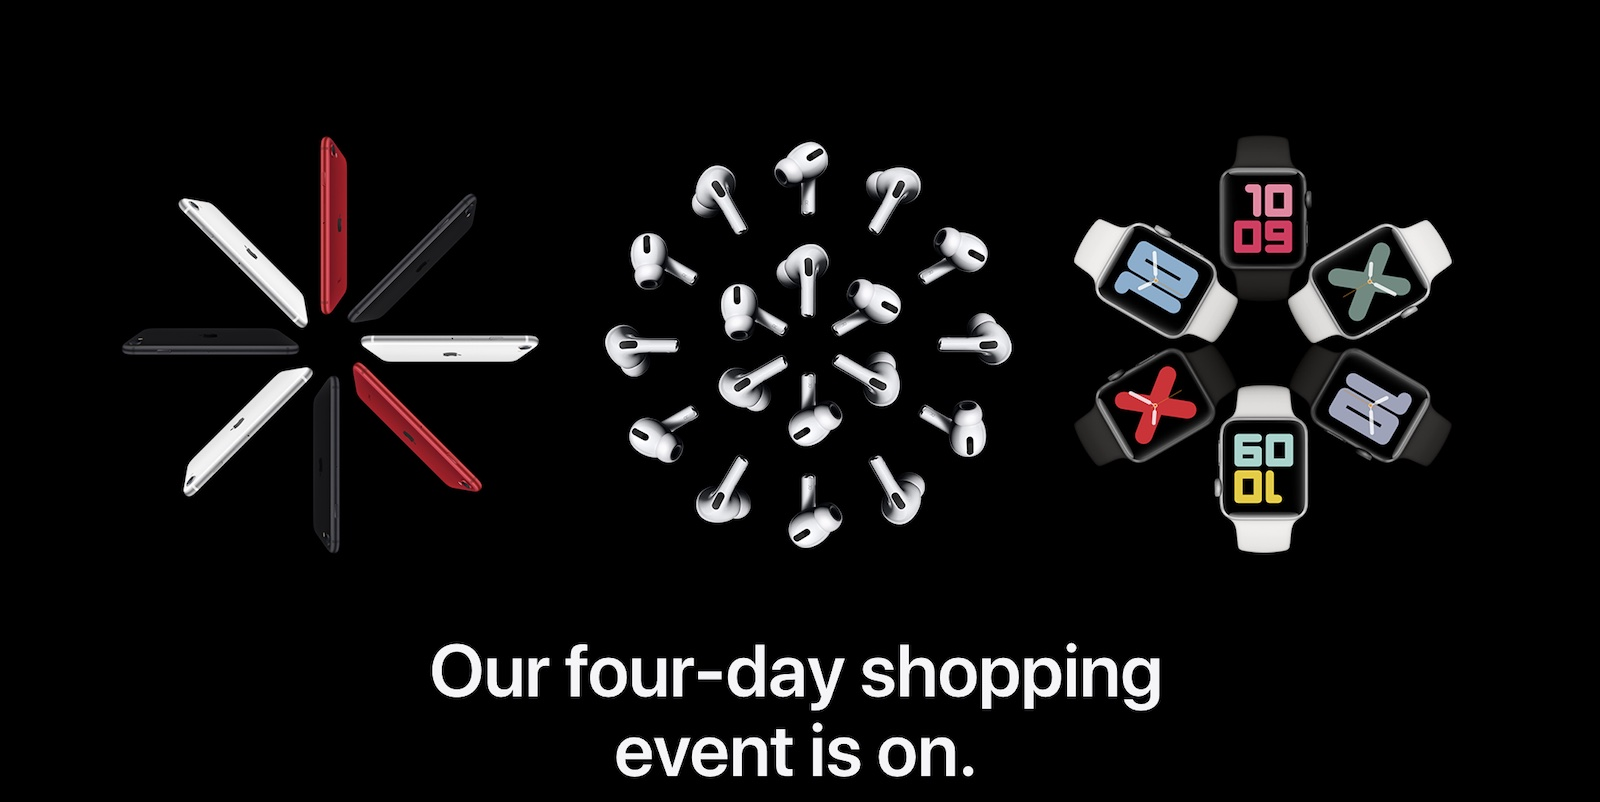 apple shopping event 2020 banner